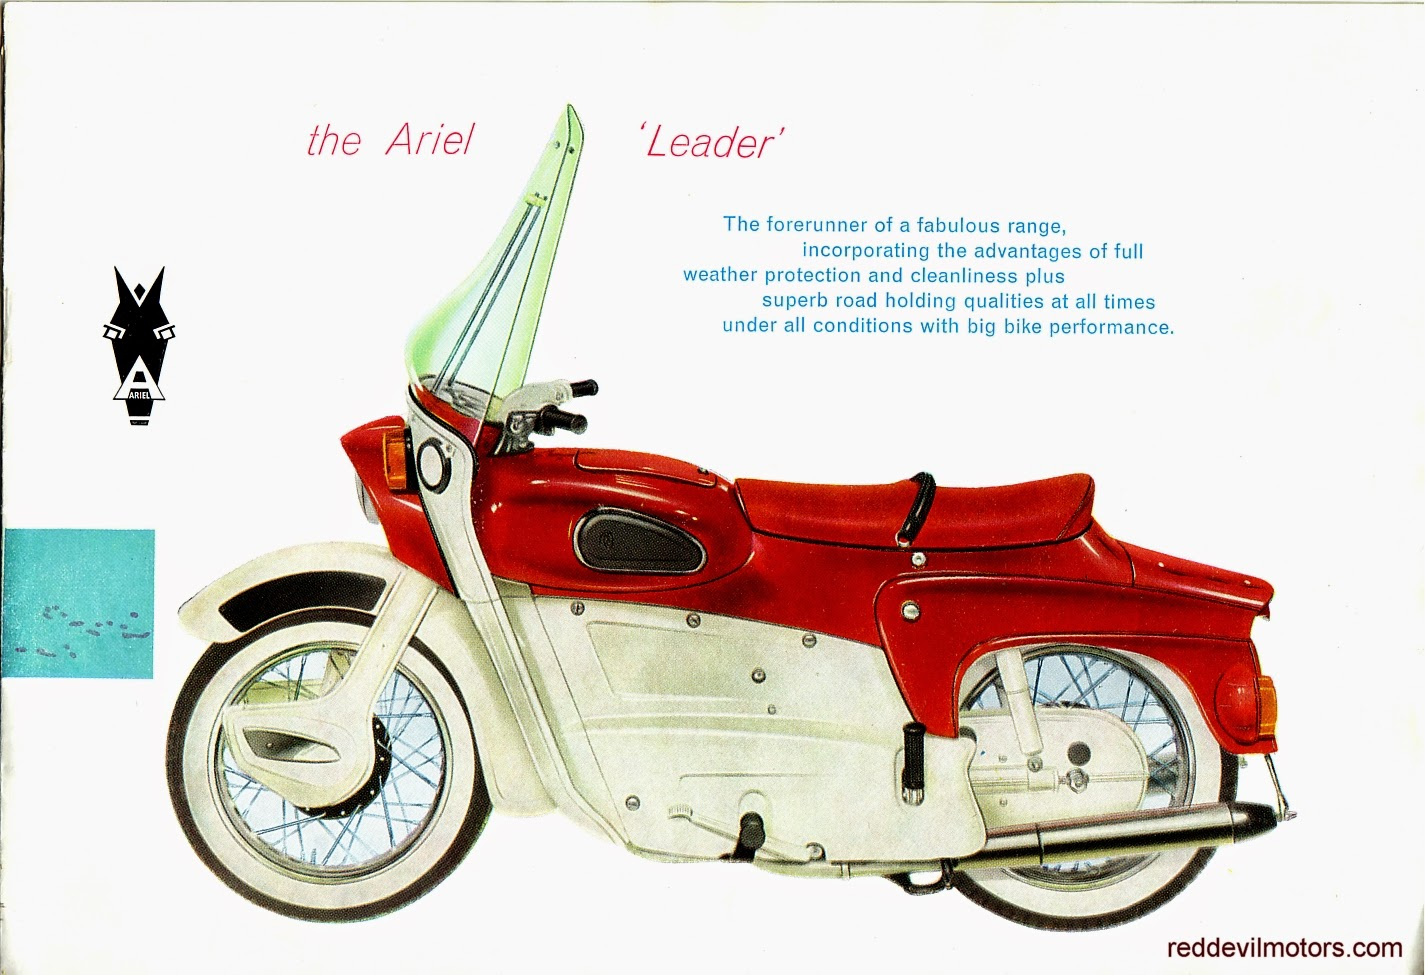 Ariel Arrow and Leader brochure page 2